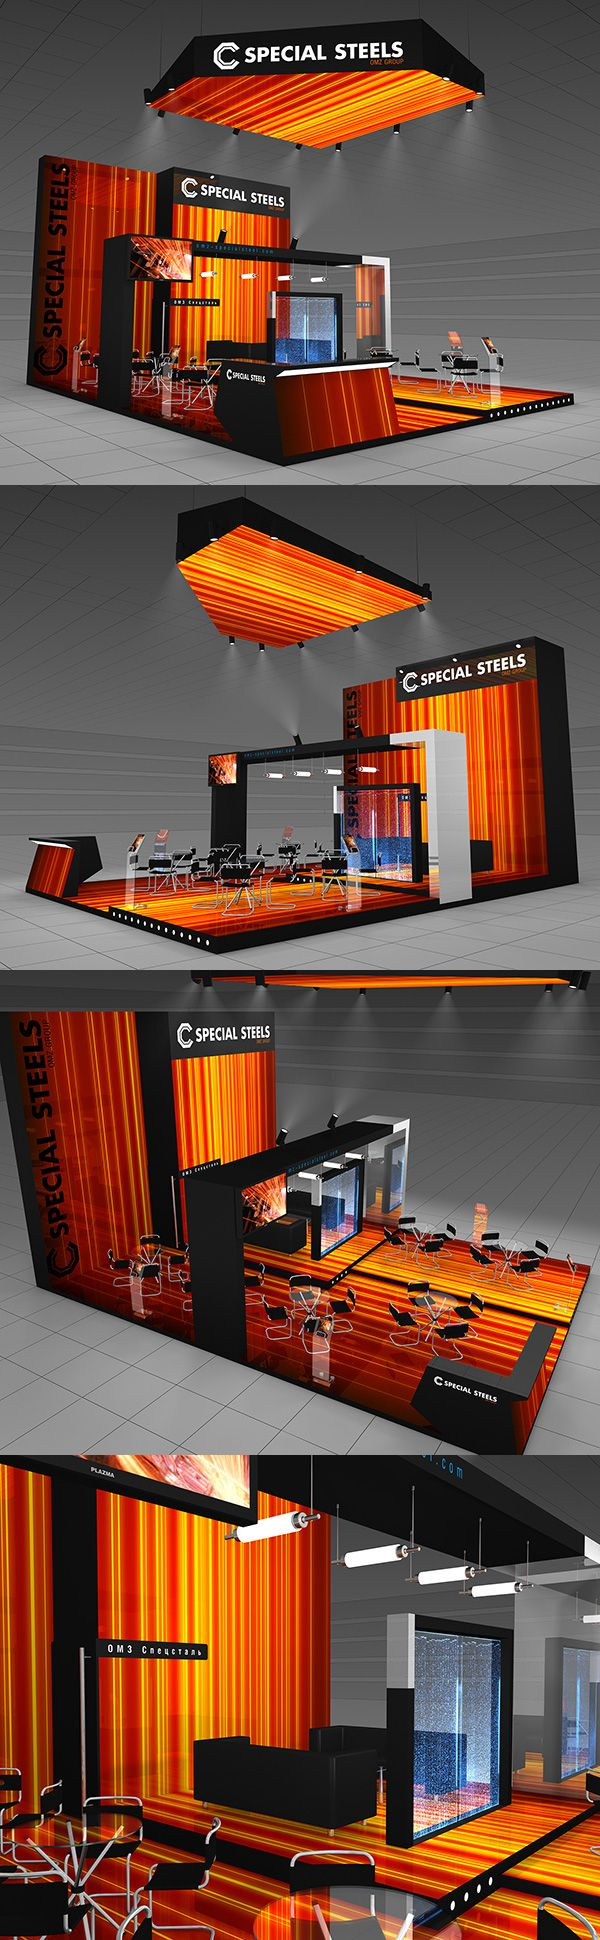 Exhibition Stand Behance : Special steels exhibition stand on behance